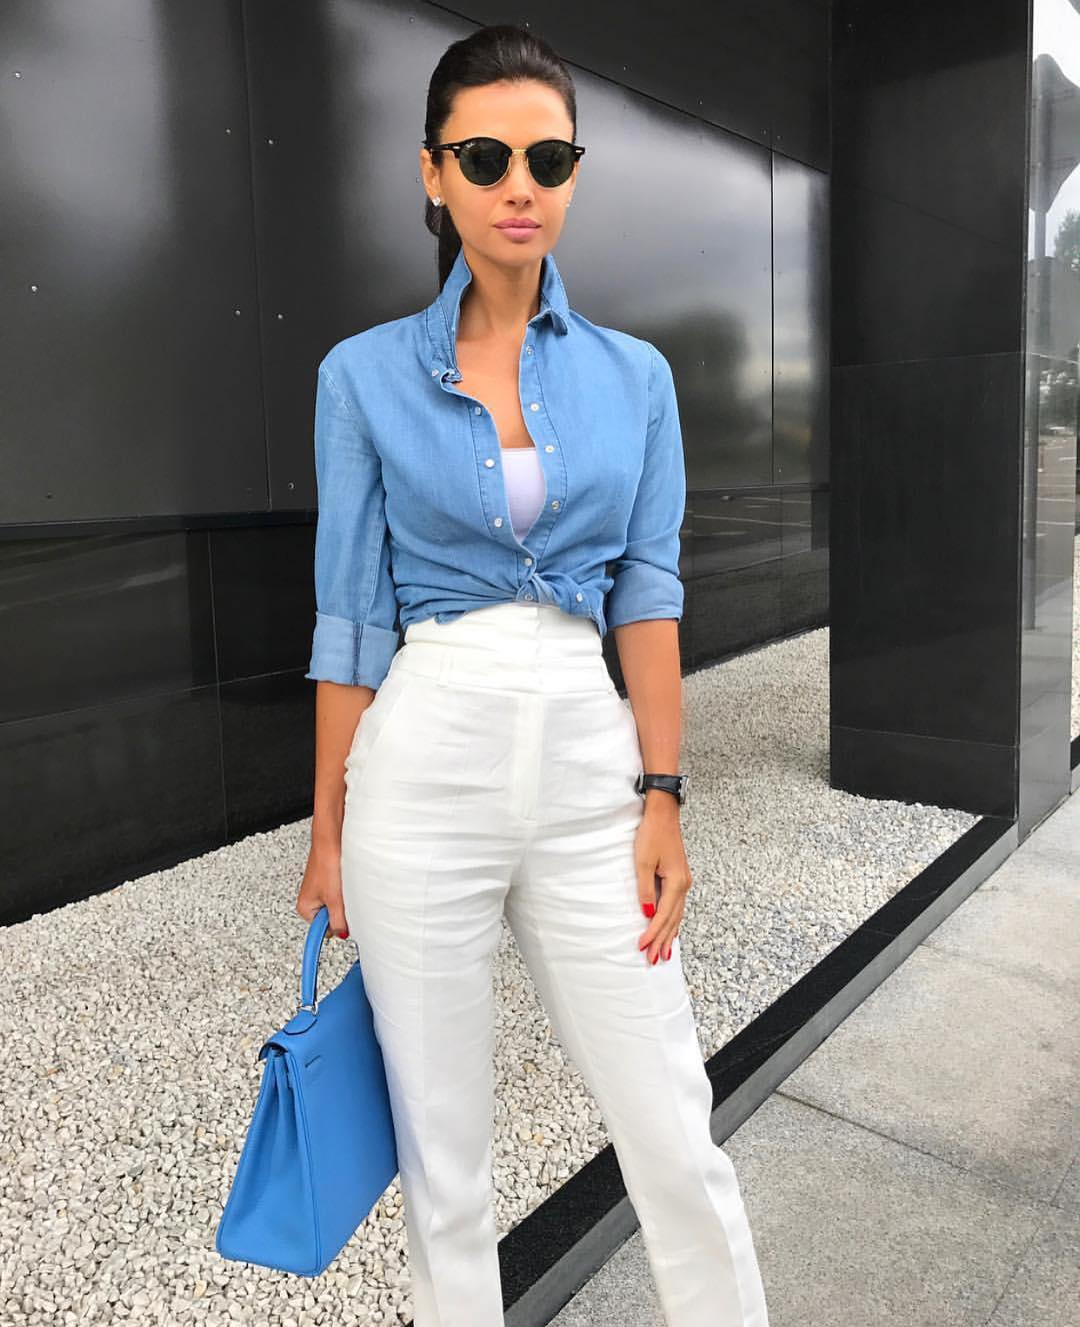 Denim Shirt And White Separates For Summer Office Hours 2019